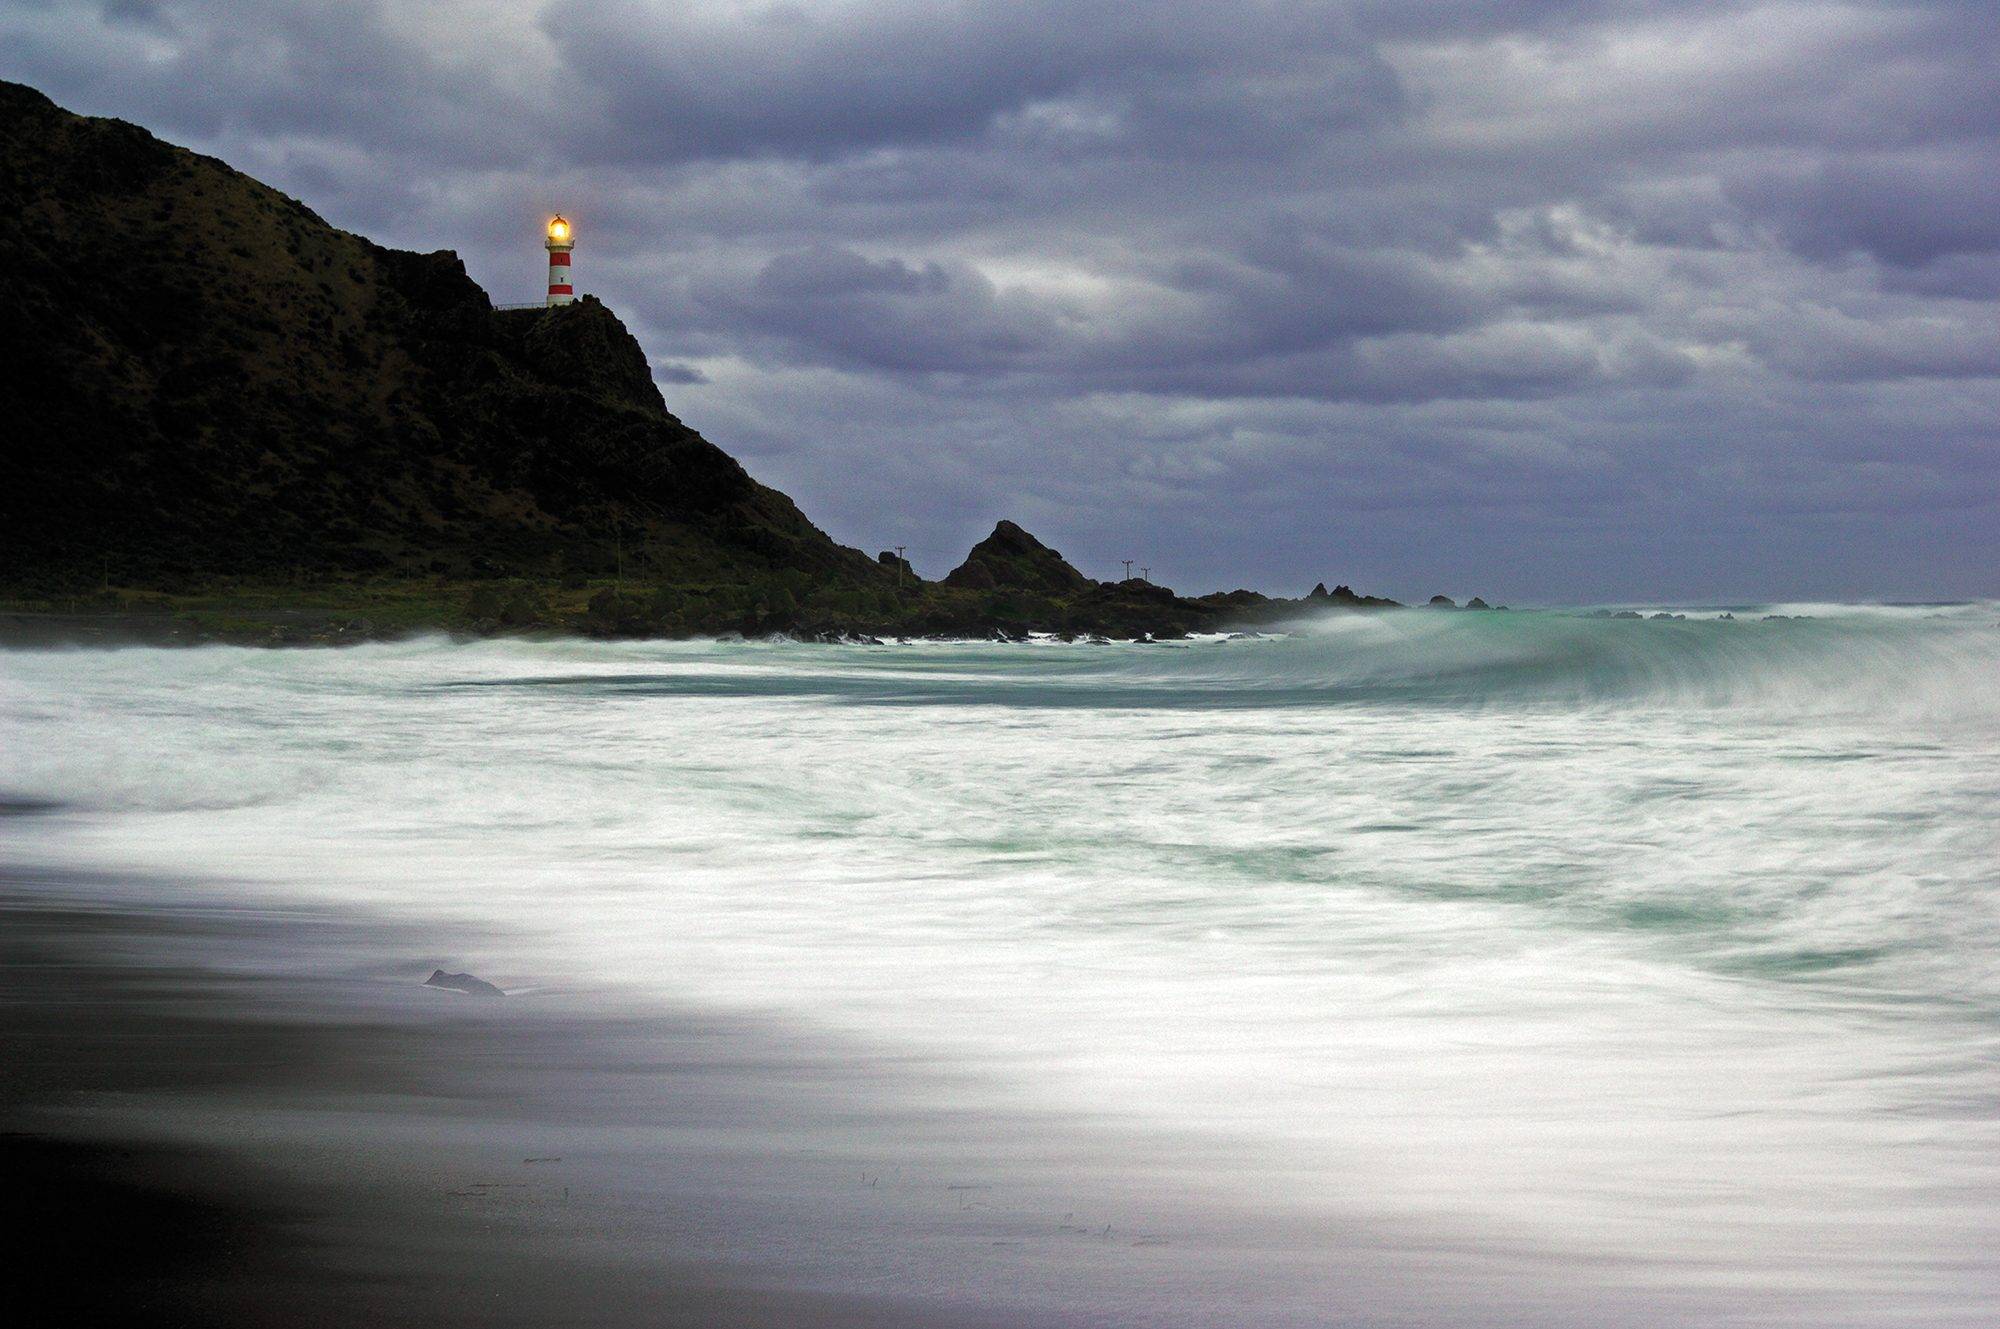 Casting a frail loom during a storm, Cape Palliser lighthouse marks the southern-most tip of the North Island. Built in 1897, the light has been managed from a control room in Wellington since 1986.